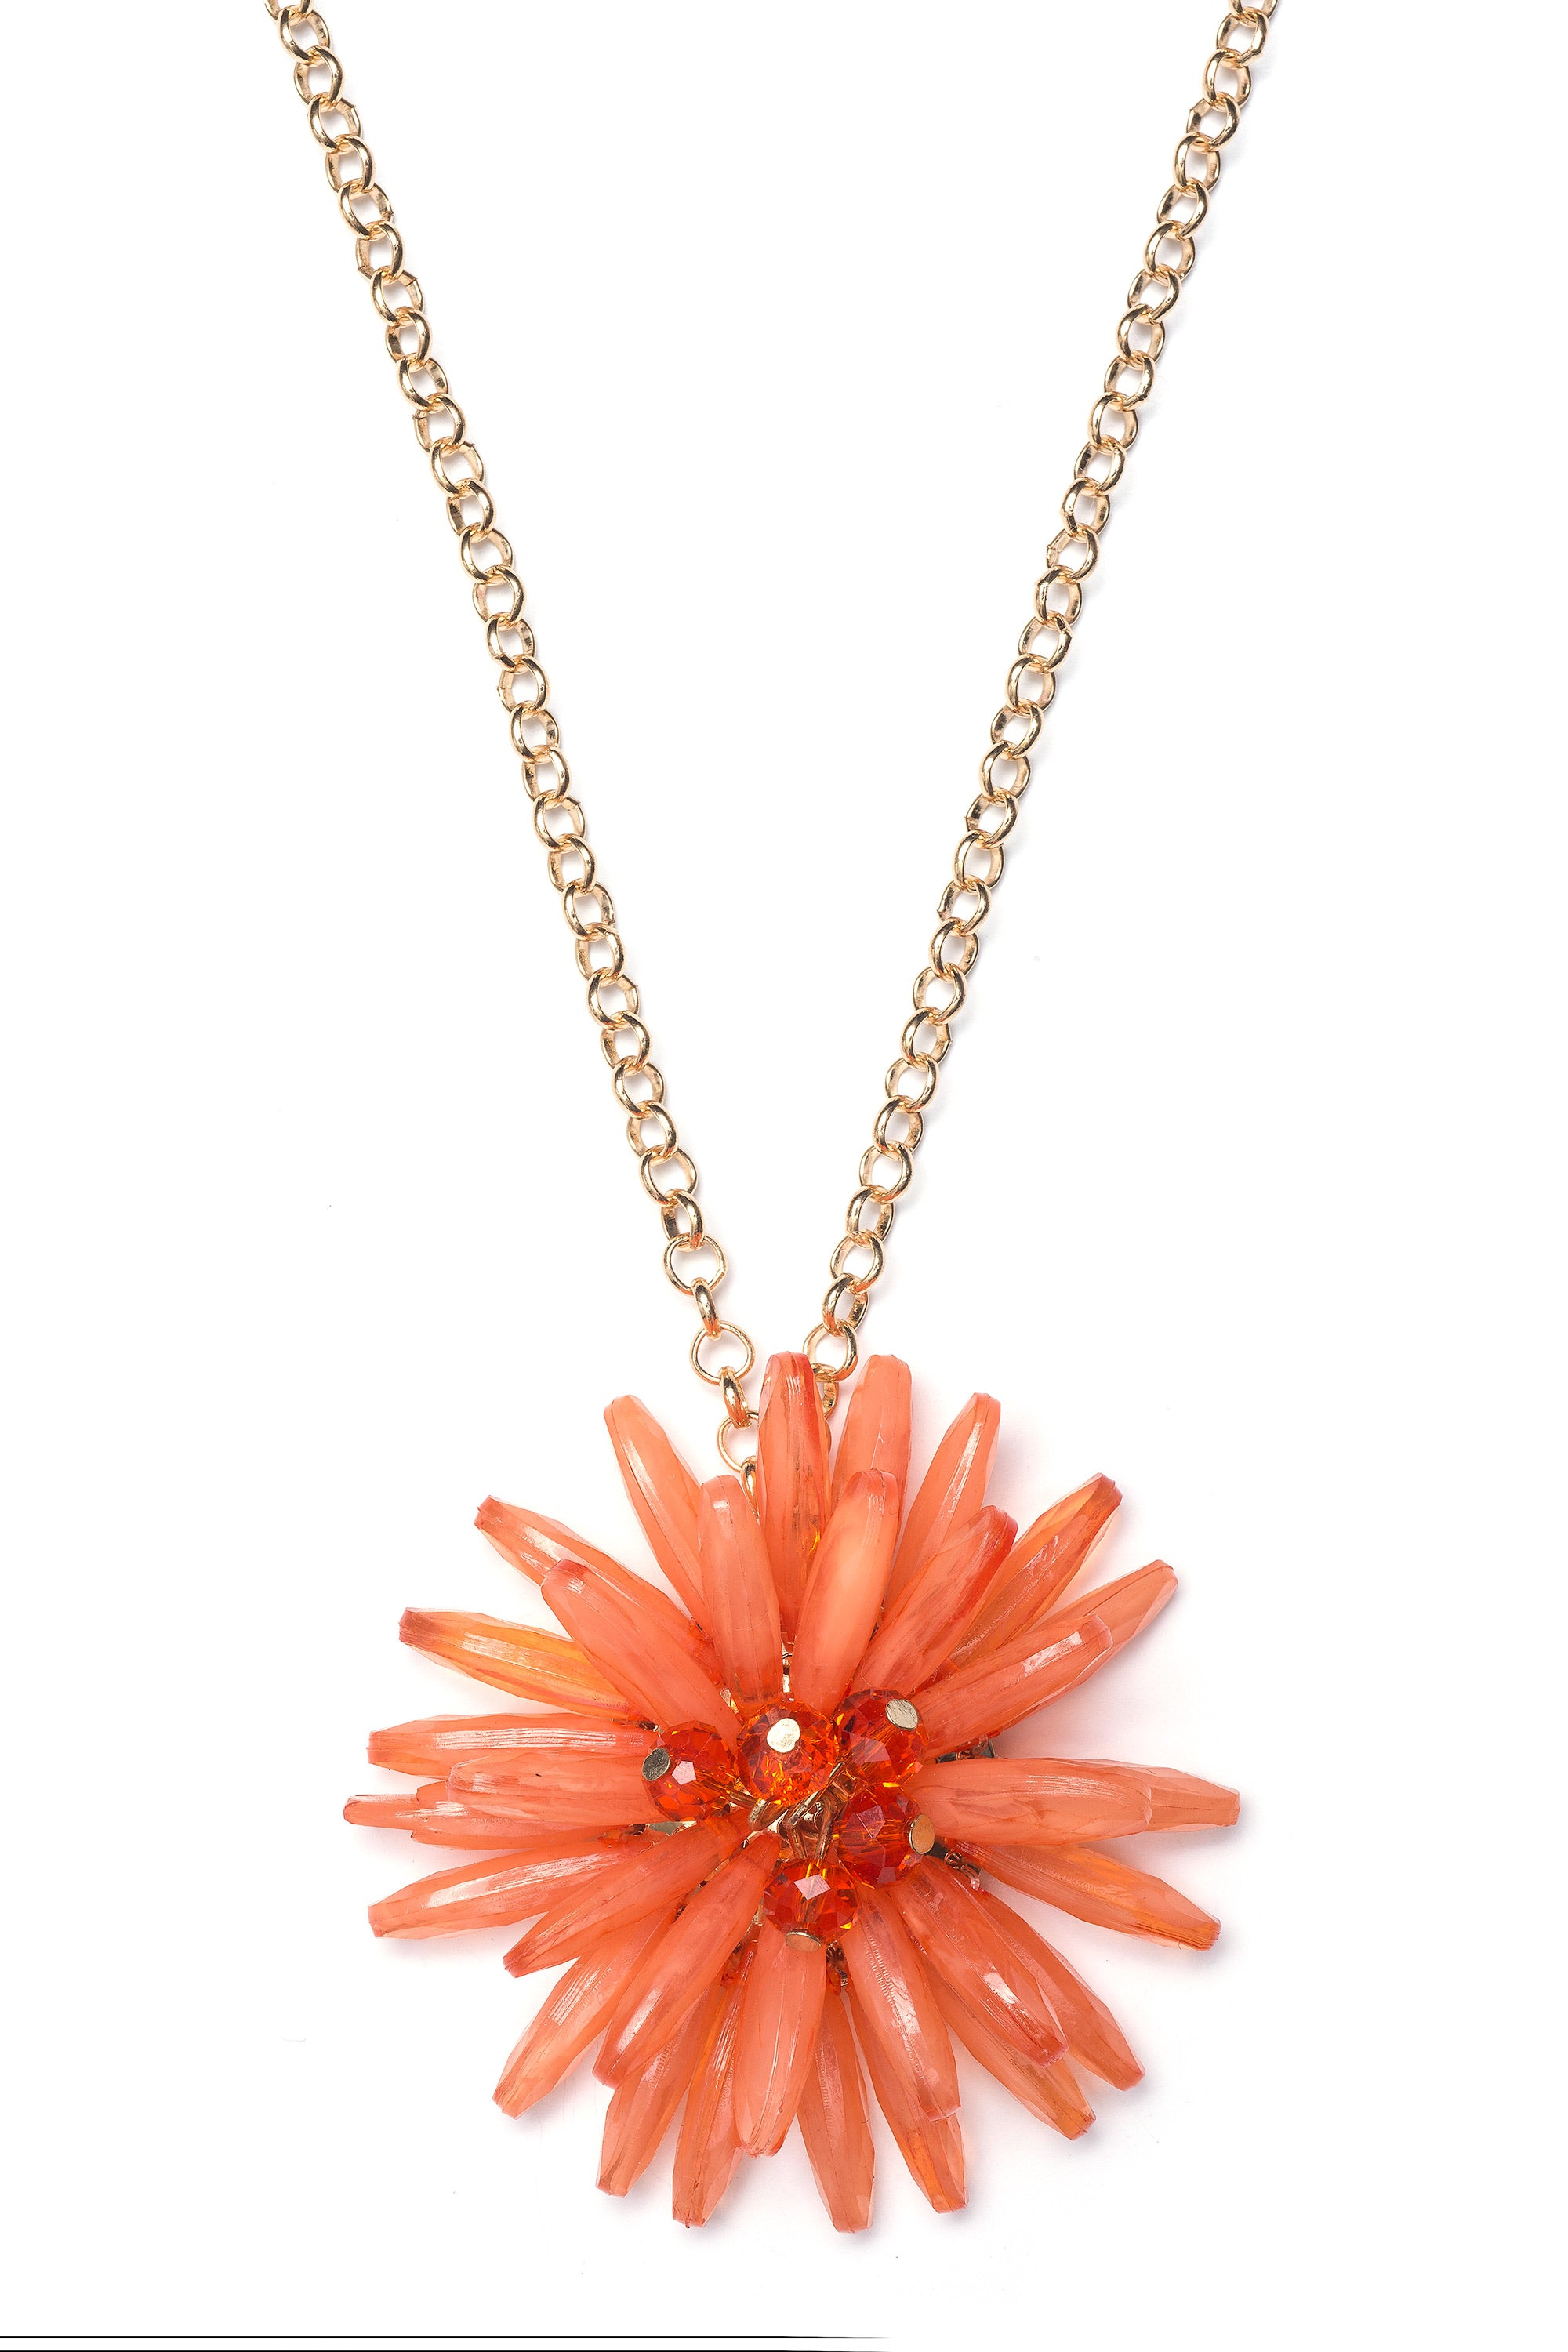 Type 1 Dragon Flower Necklace